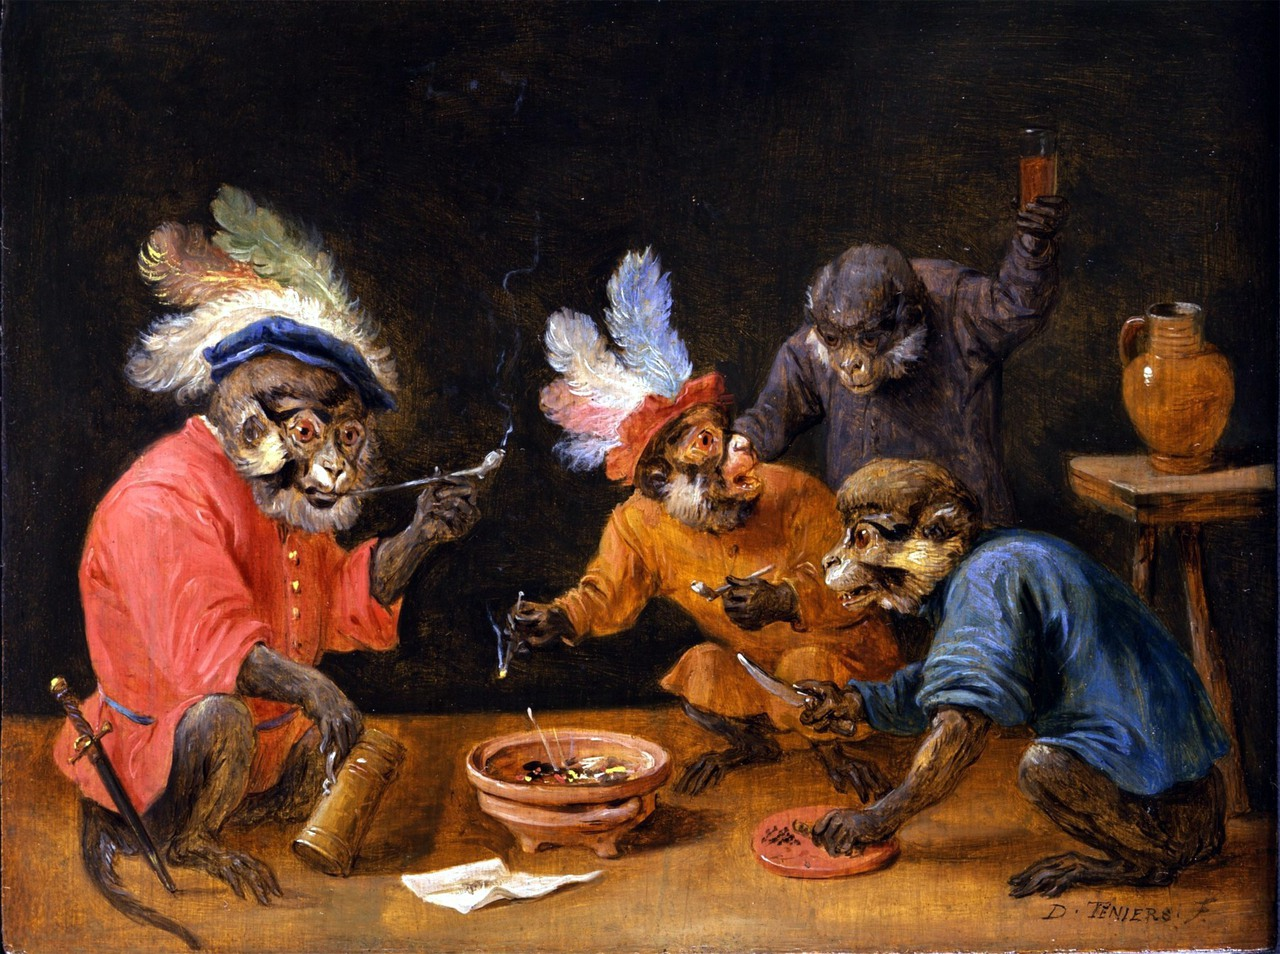 Res Obscura: Why Are There So Many 17th Century Paintings ...